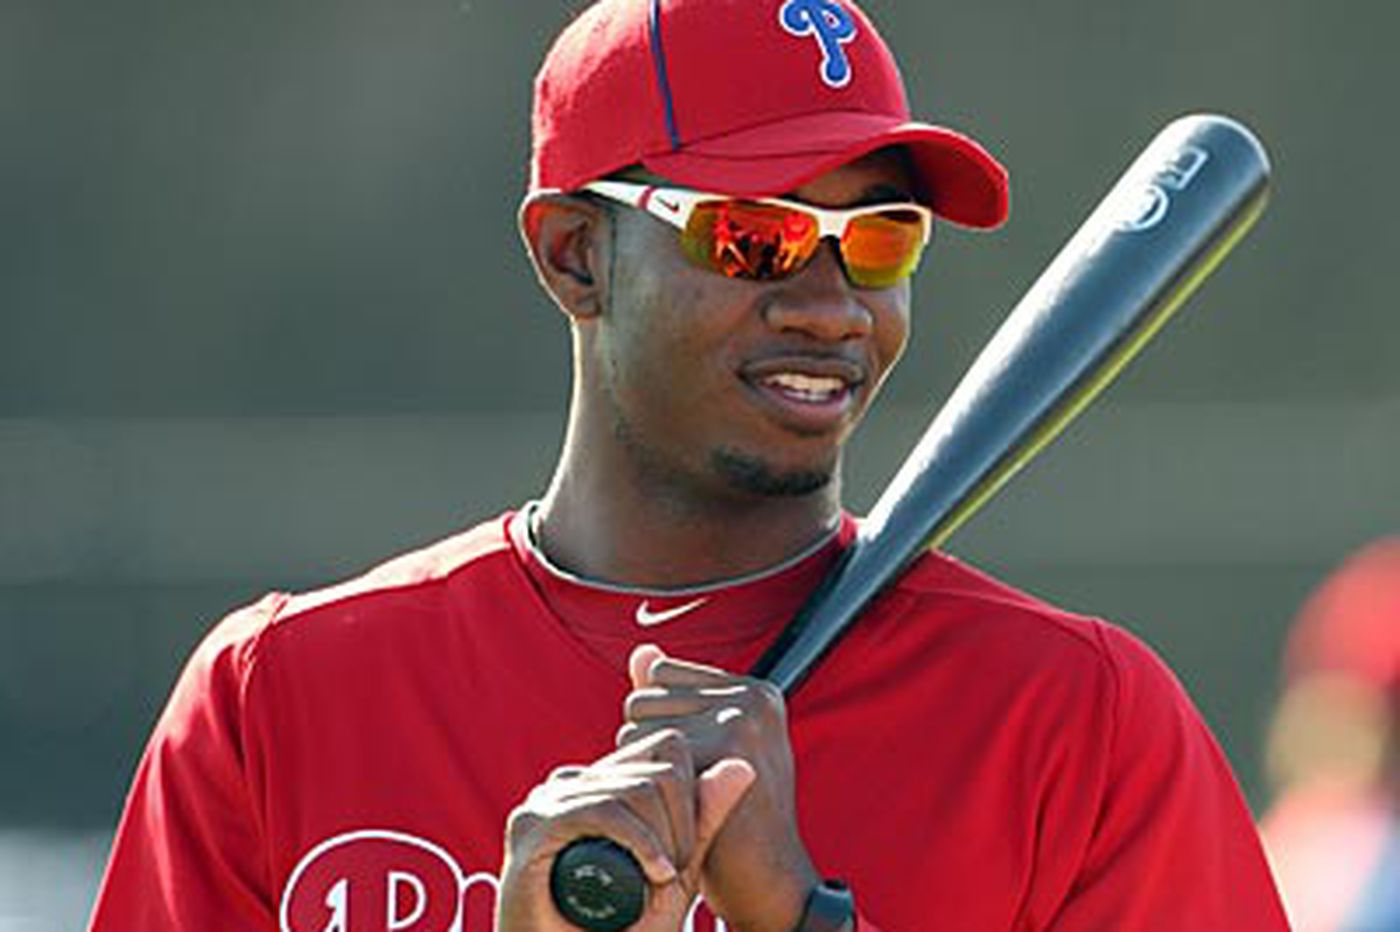 Phillies Notes: Brown getting close to promotion